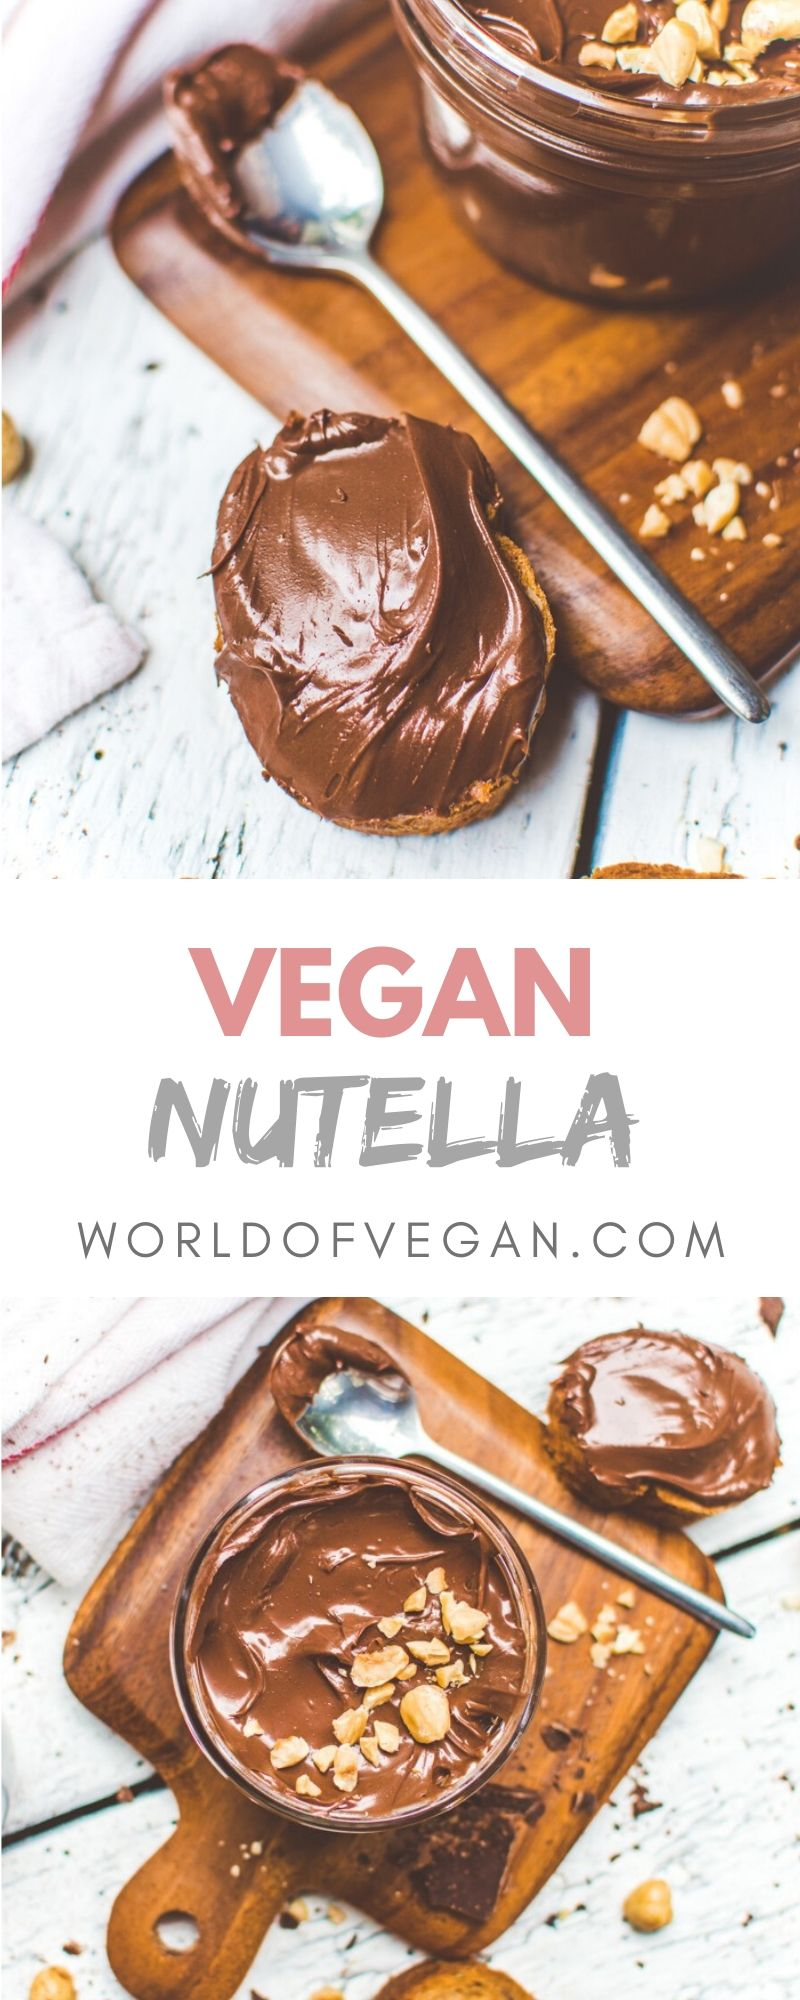 Homemade Vegan Nutella Recipe In 2020 With Images Vegan Chocolate Recipes Nutella Recipes